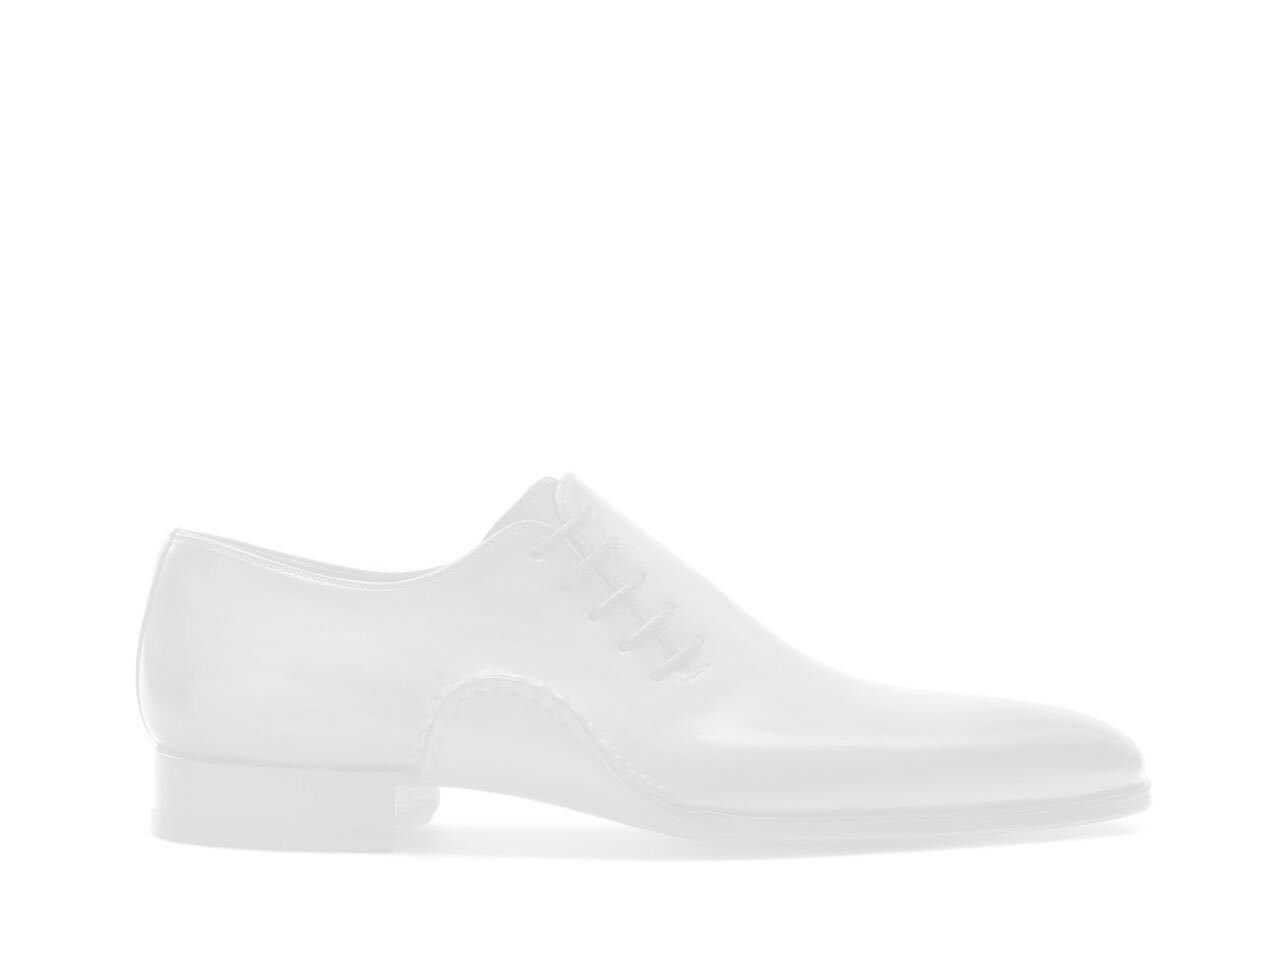 Side view of the Magnanni Catera Lo Grey Men's Sneakers